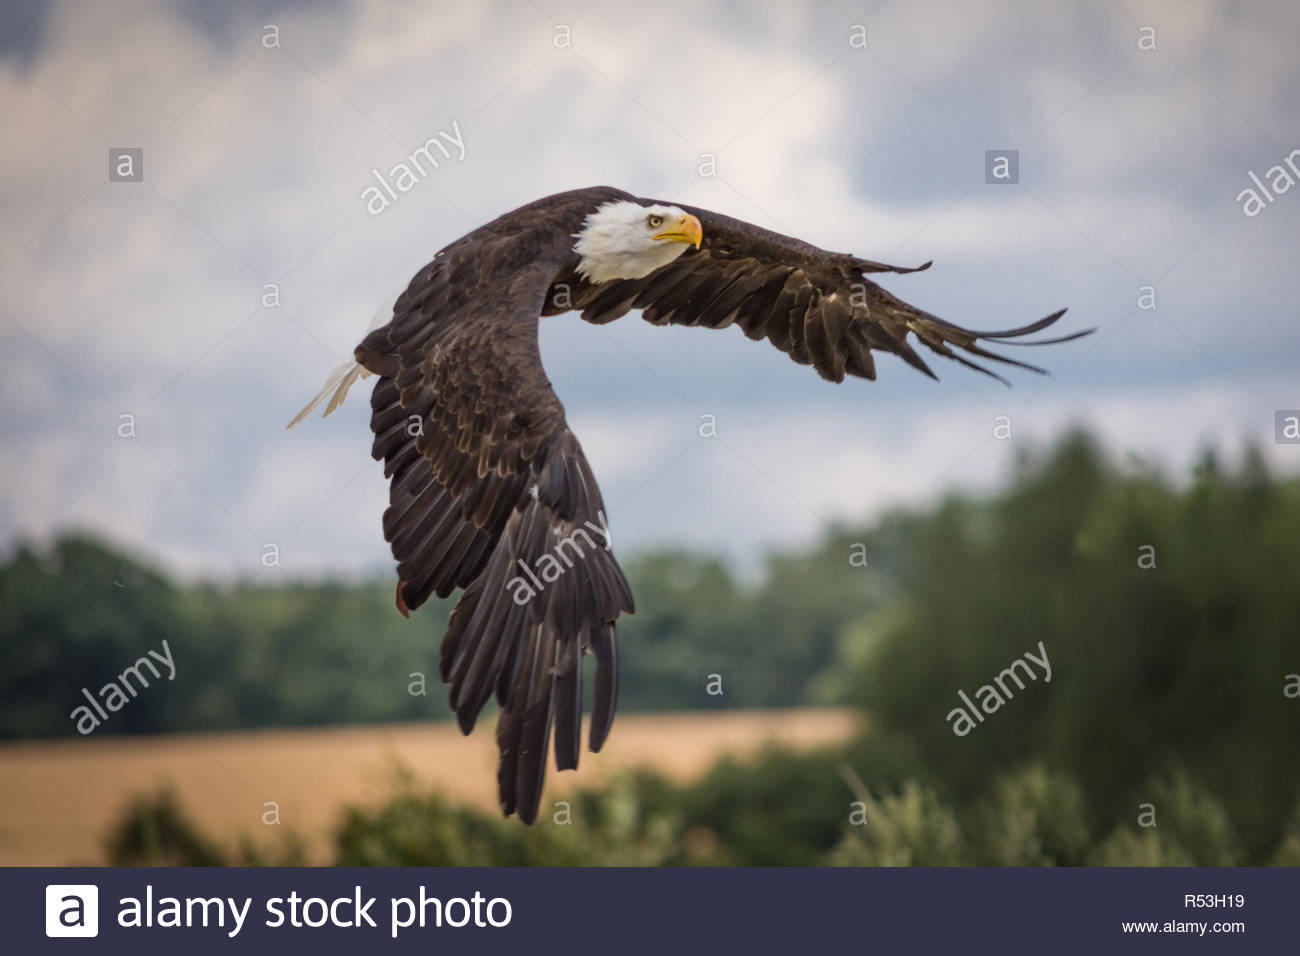 eagles have very large, hooked beaks for ripping flesh from their prey, strong, muscular legs, and powerful talons. The beak is typically heavier than Stock Photo